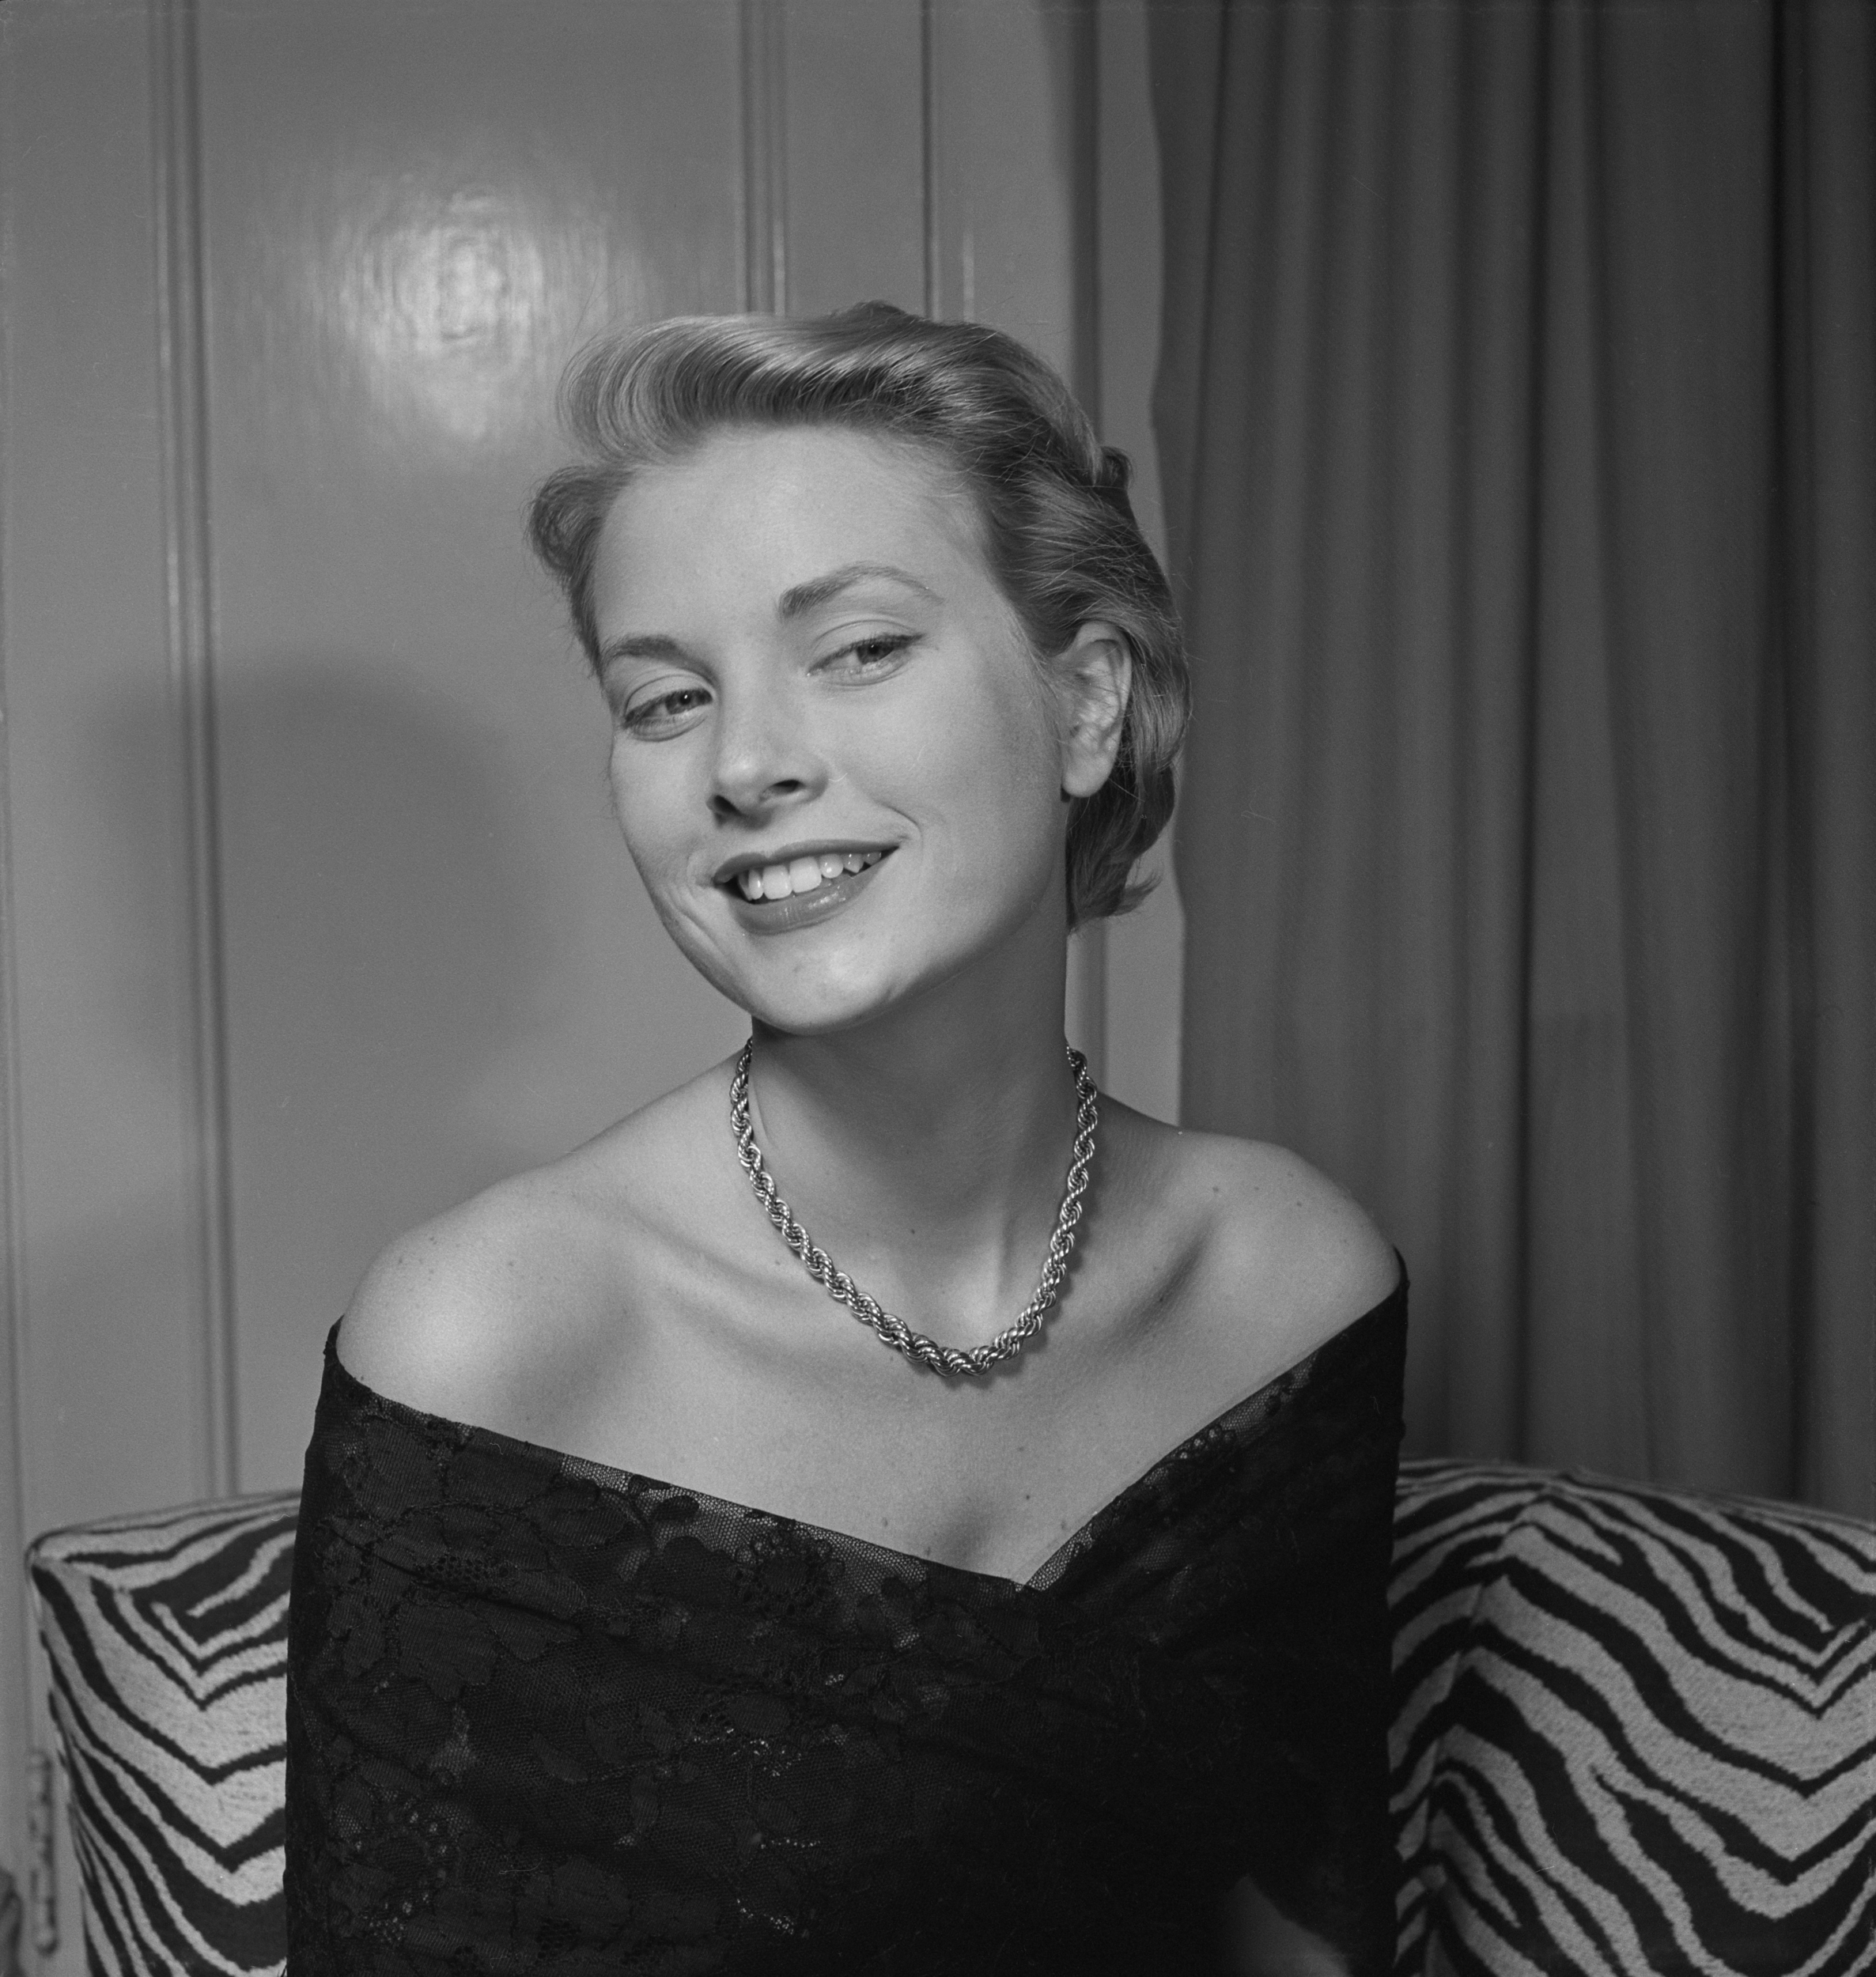 Today marks the 33rd anniversary of Grace Kelly's death